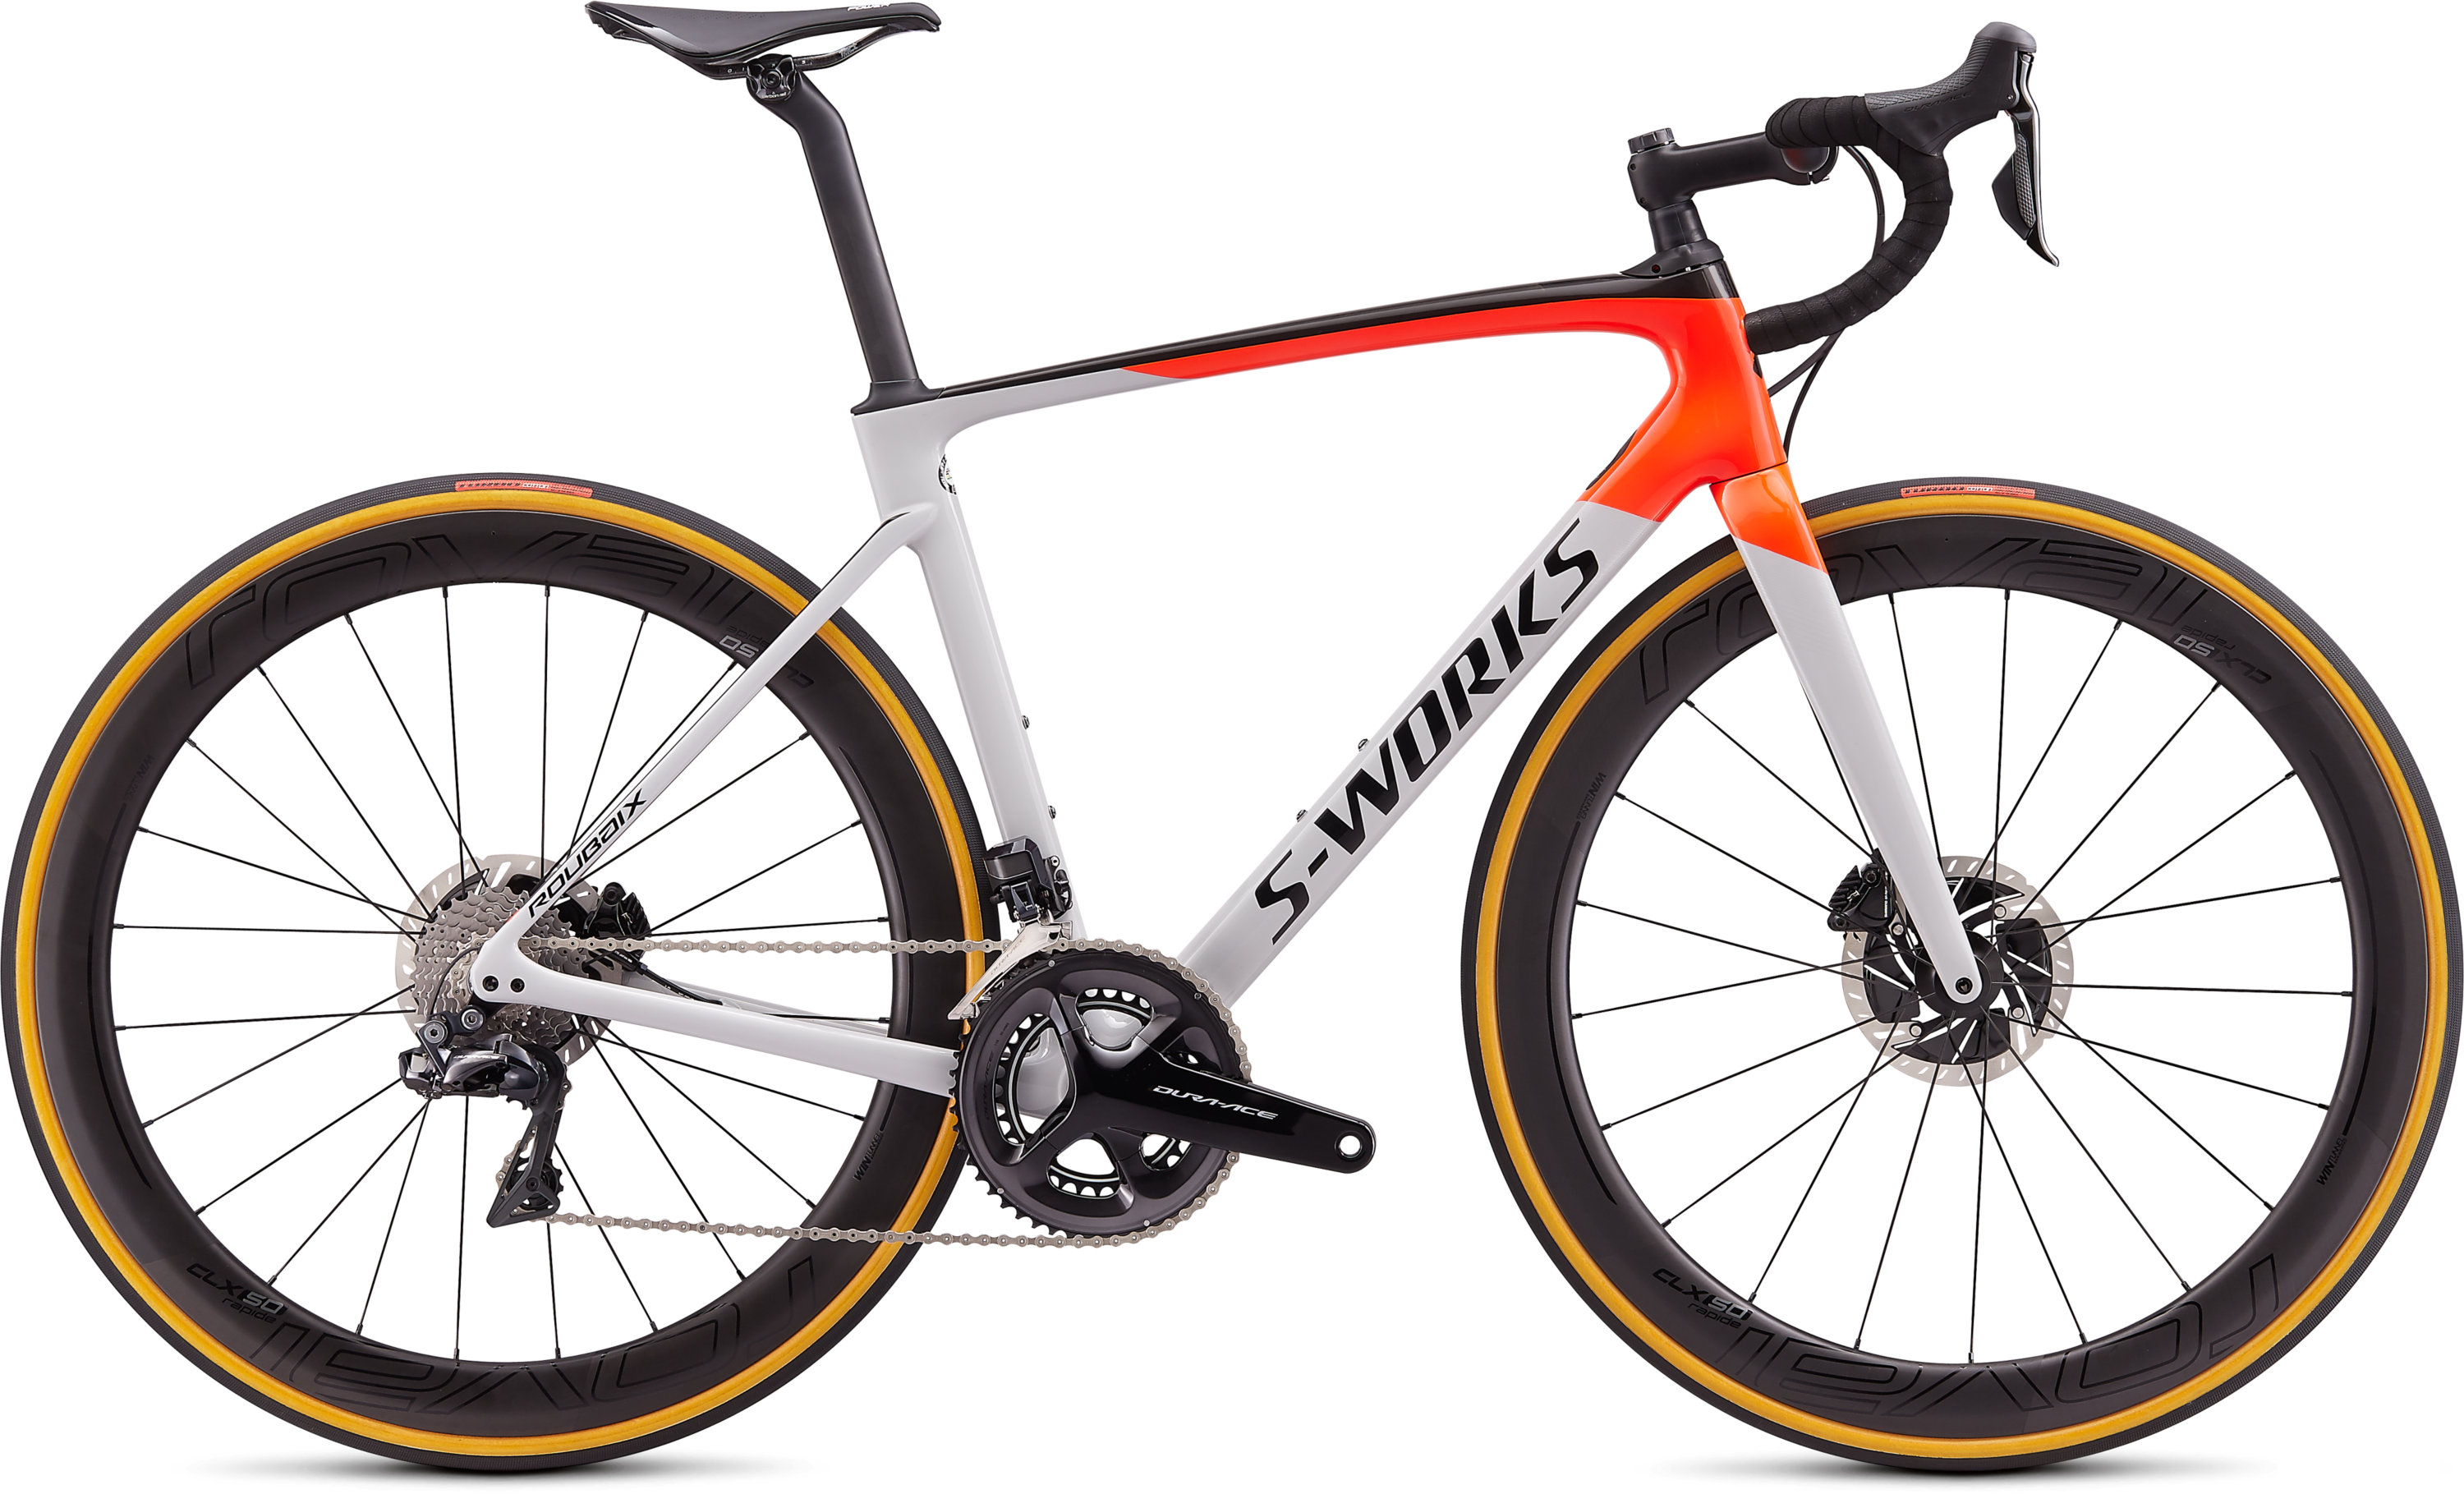 2020 Specialized S Works Roubaix Shimano Dura Ace Di2